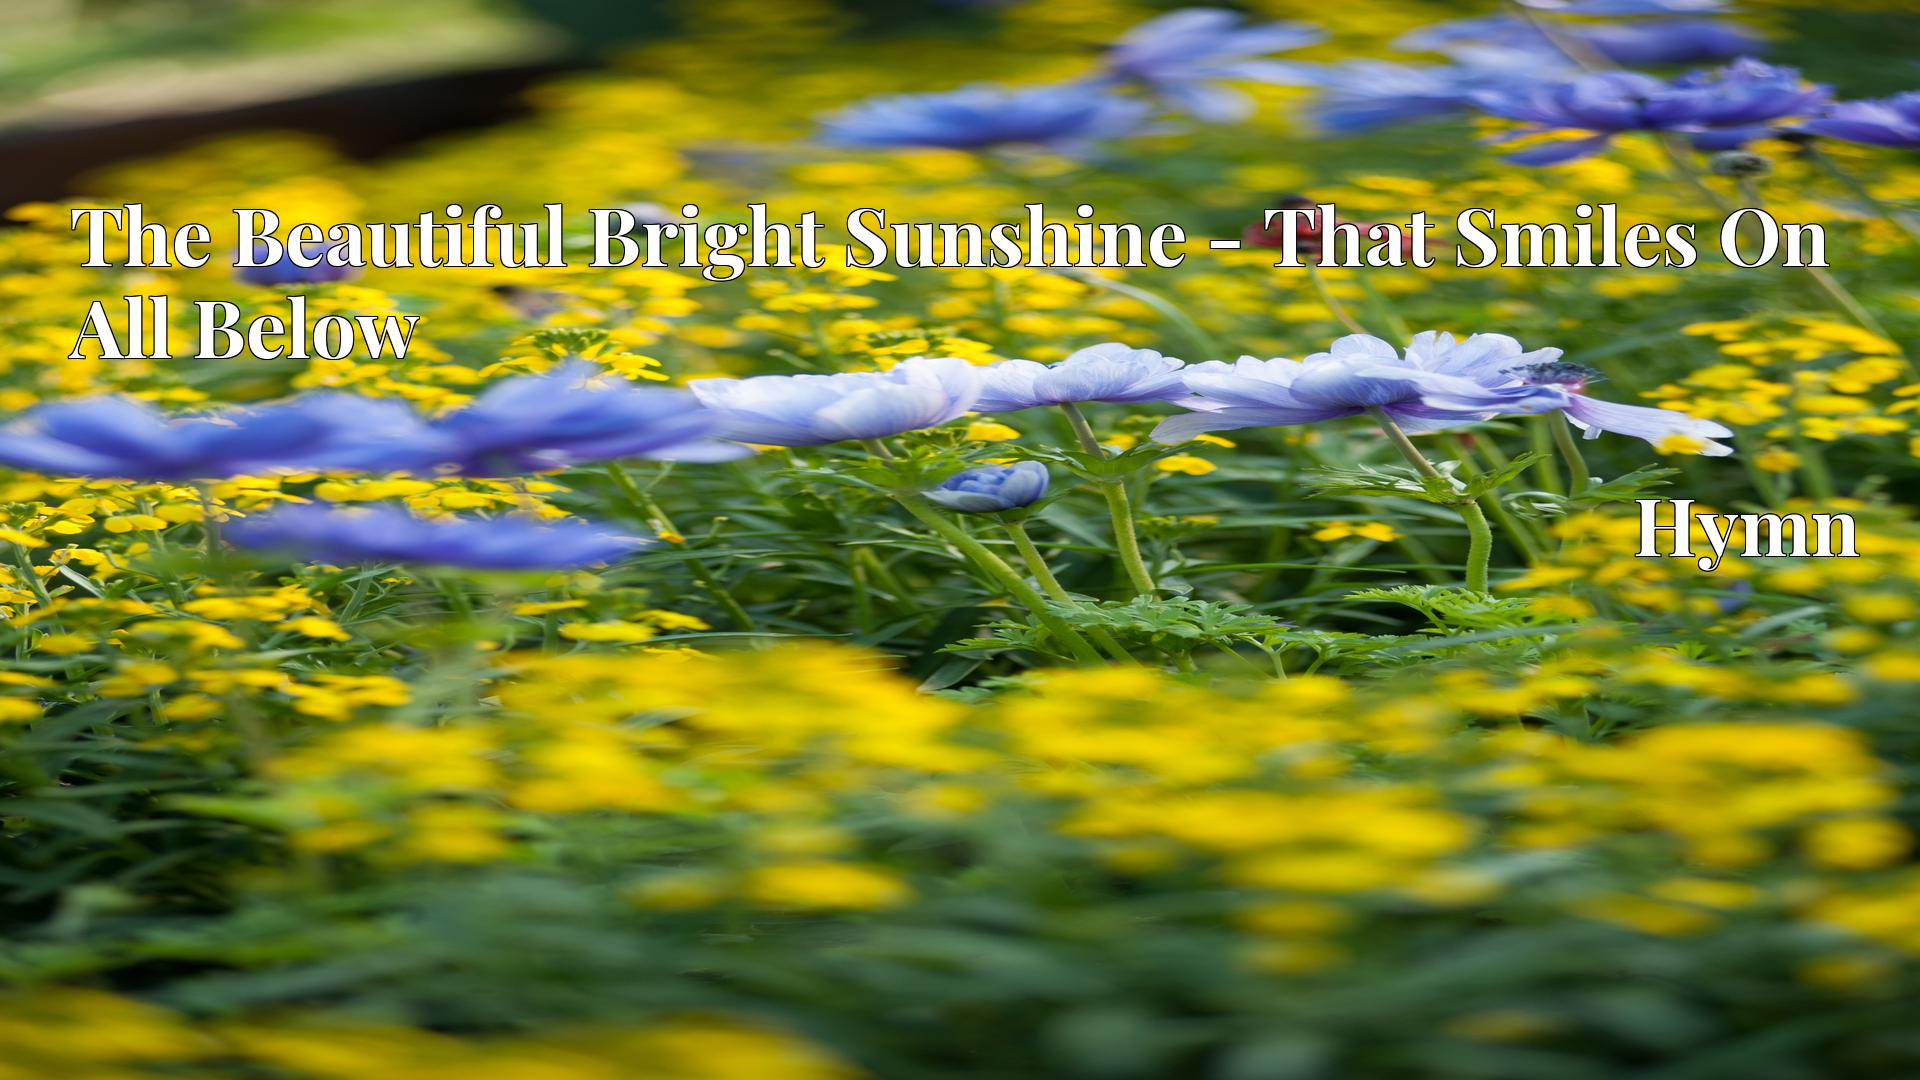 The Beautiful Bright Sunshine - That Smiles On All Below - Hymn